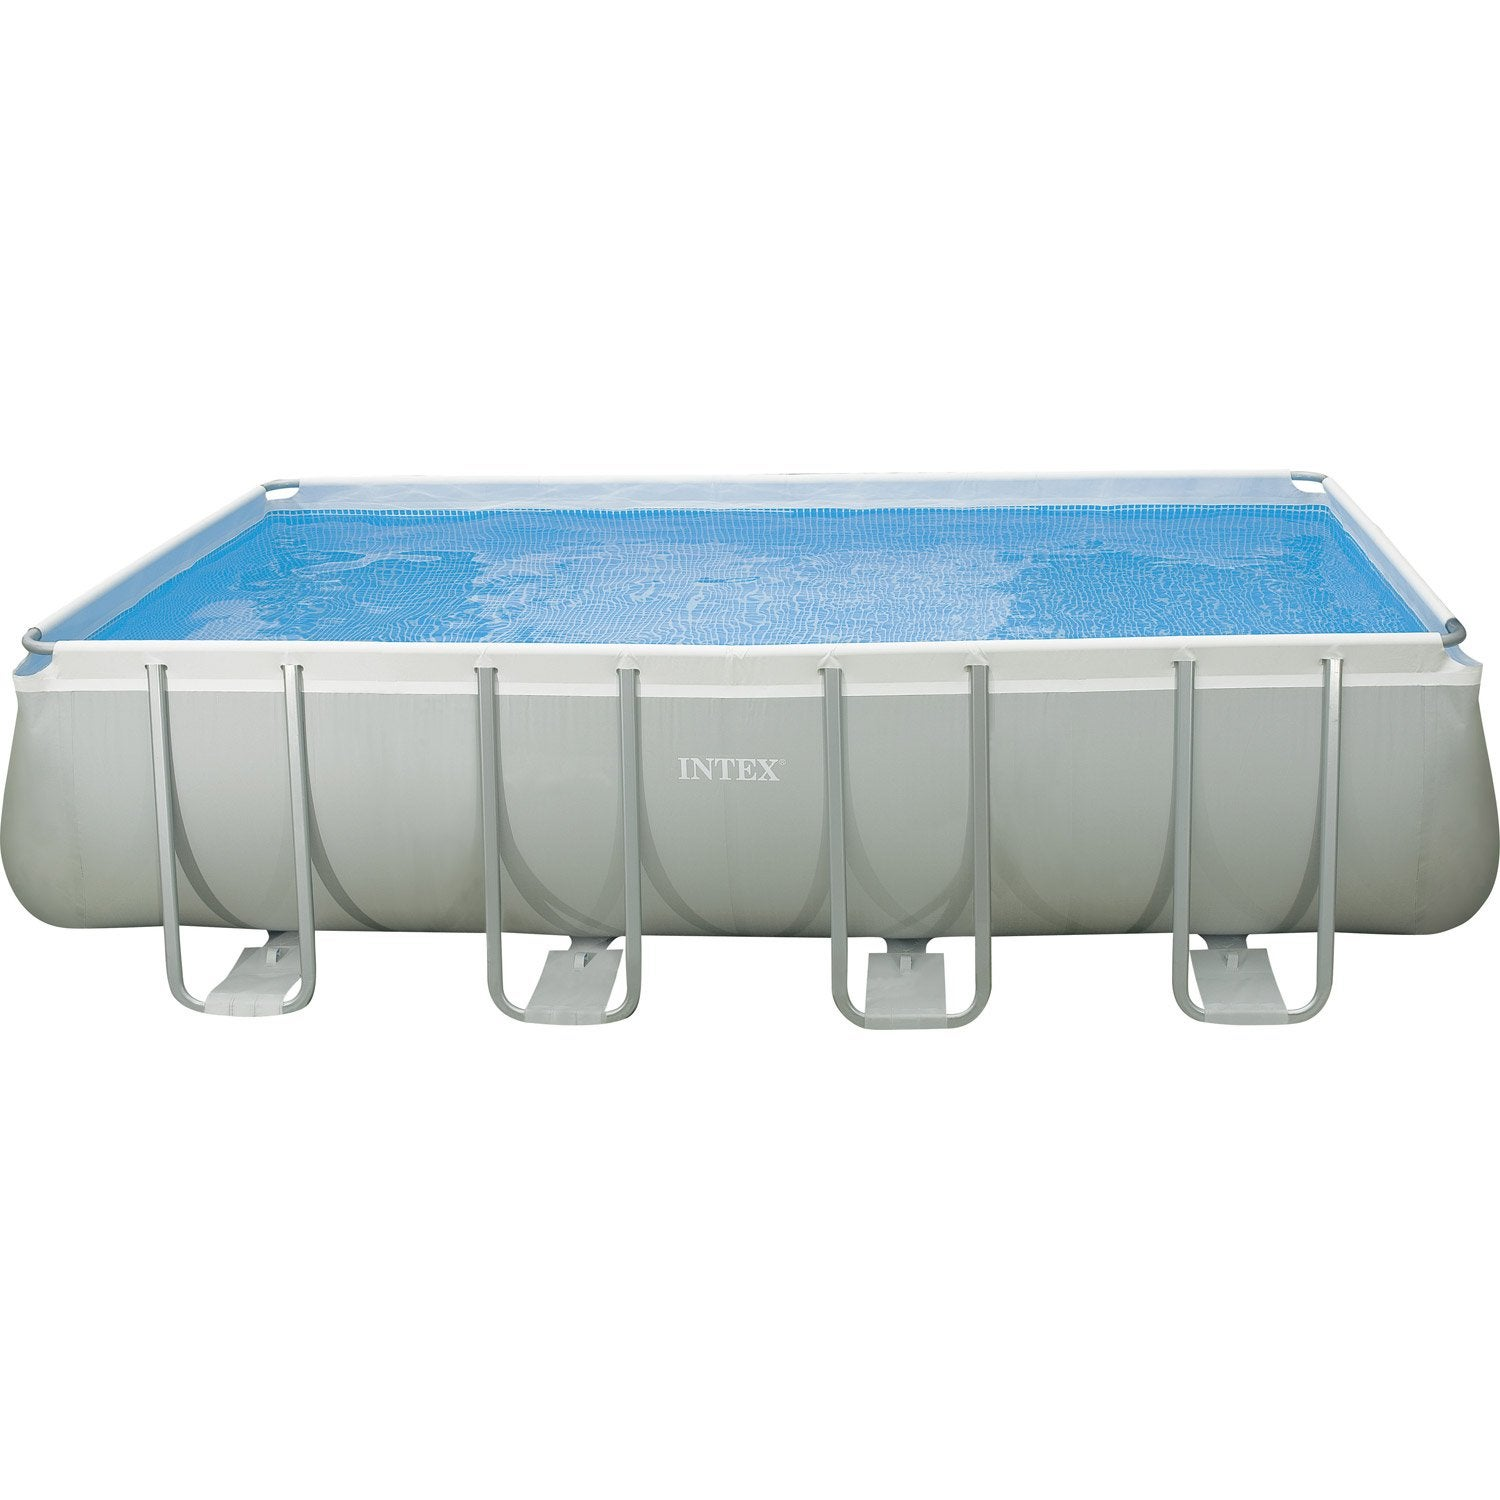 Piscine hors sol autoportante tubulaire intex l x l for Piscine urbaine leroy merlin